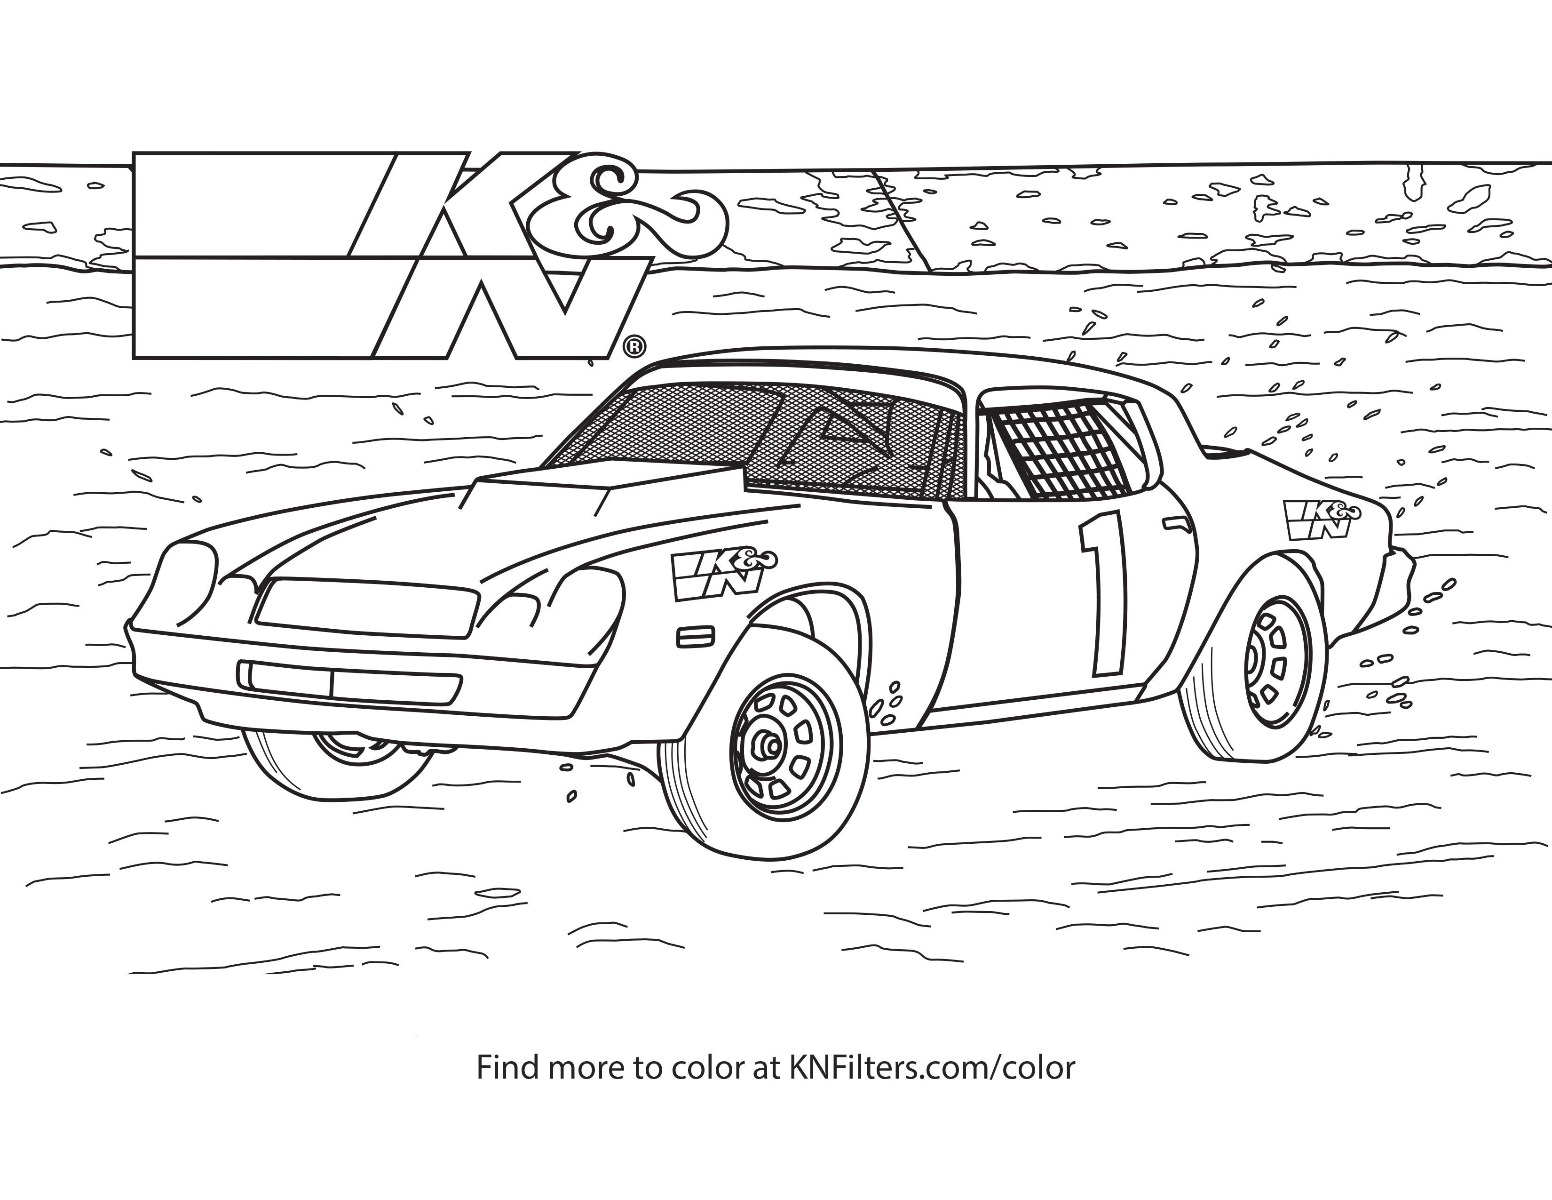 Coloring Cars Colouring In Pictures Of Cars Color A Car Printable ... | 1200x1552